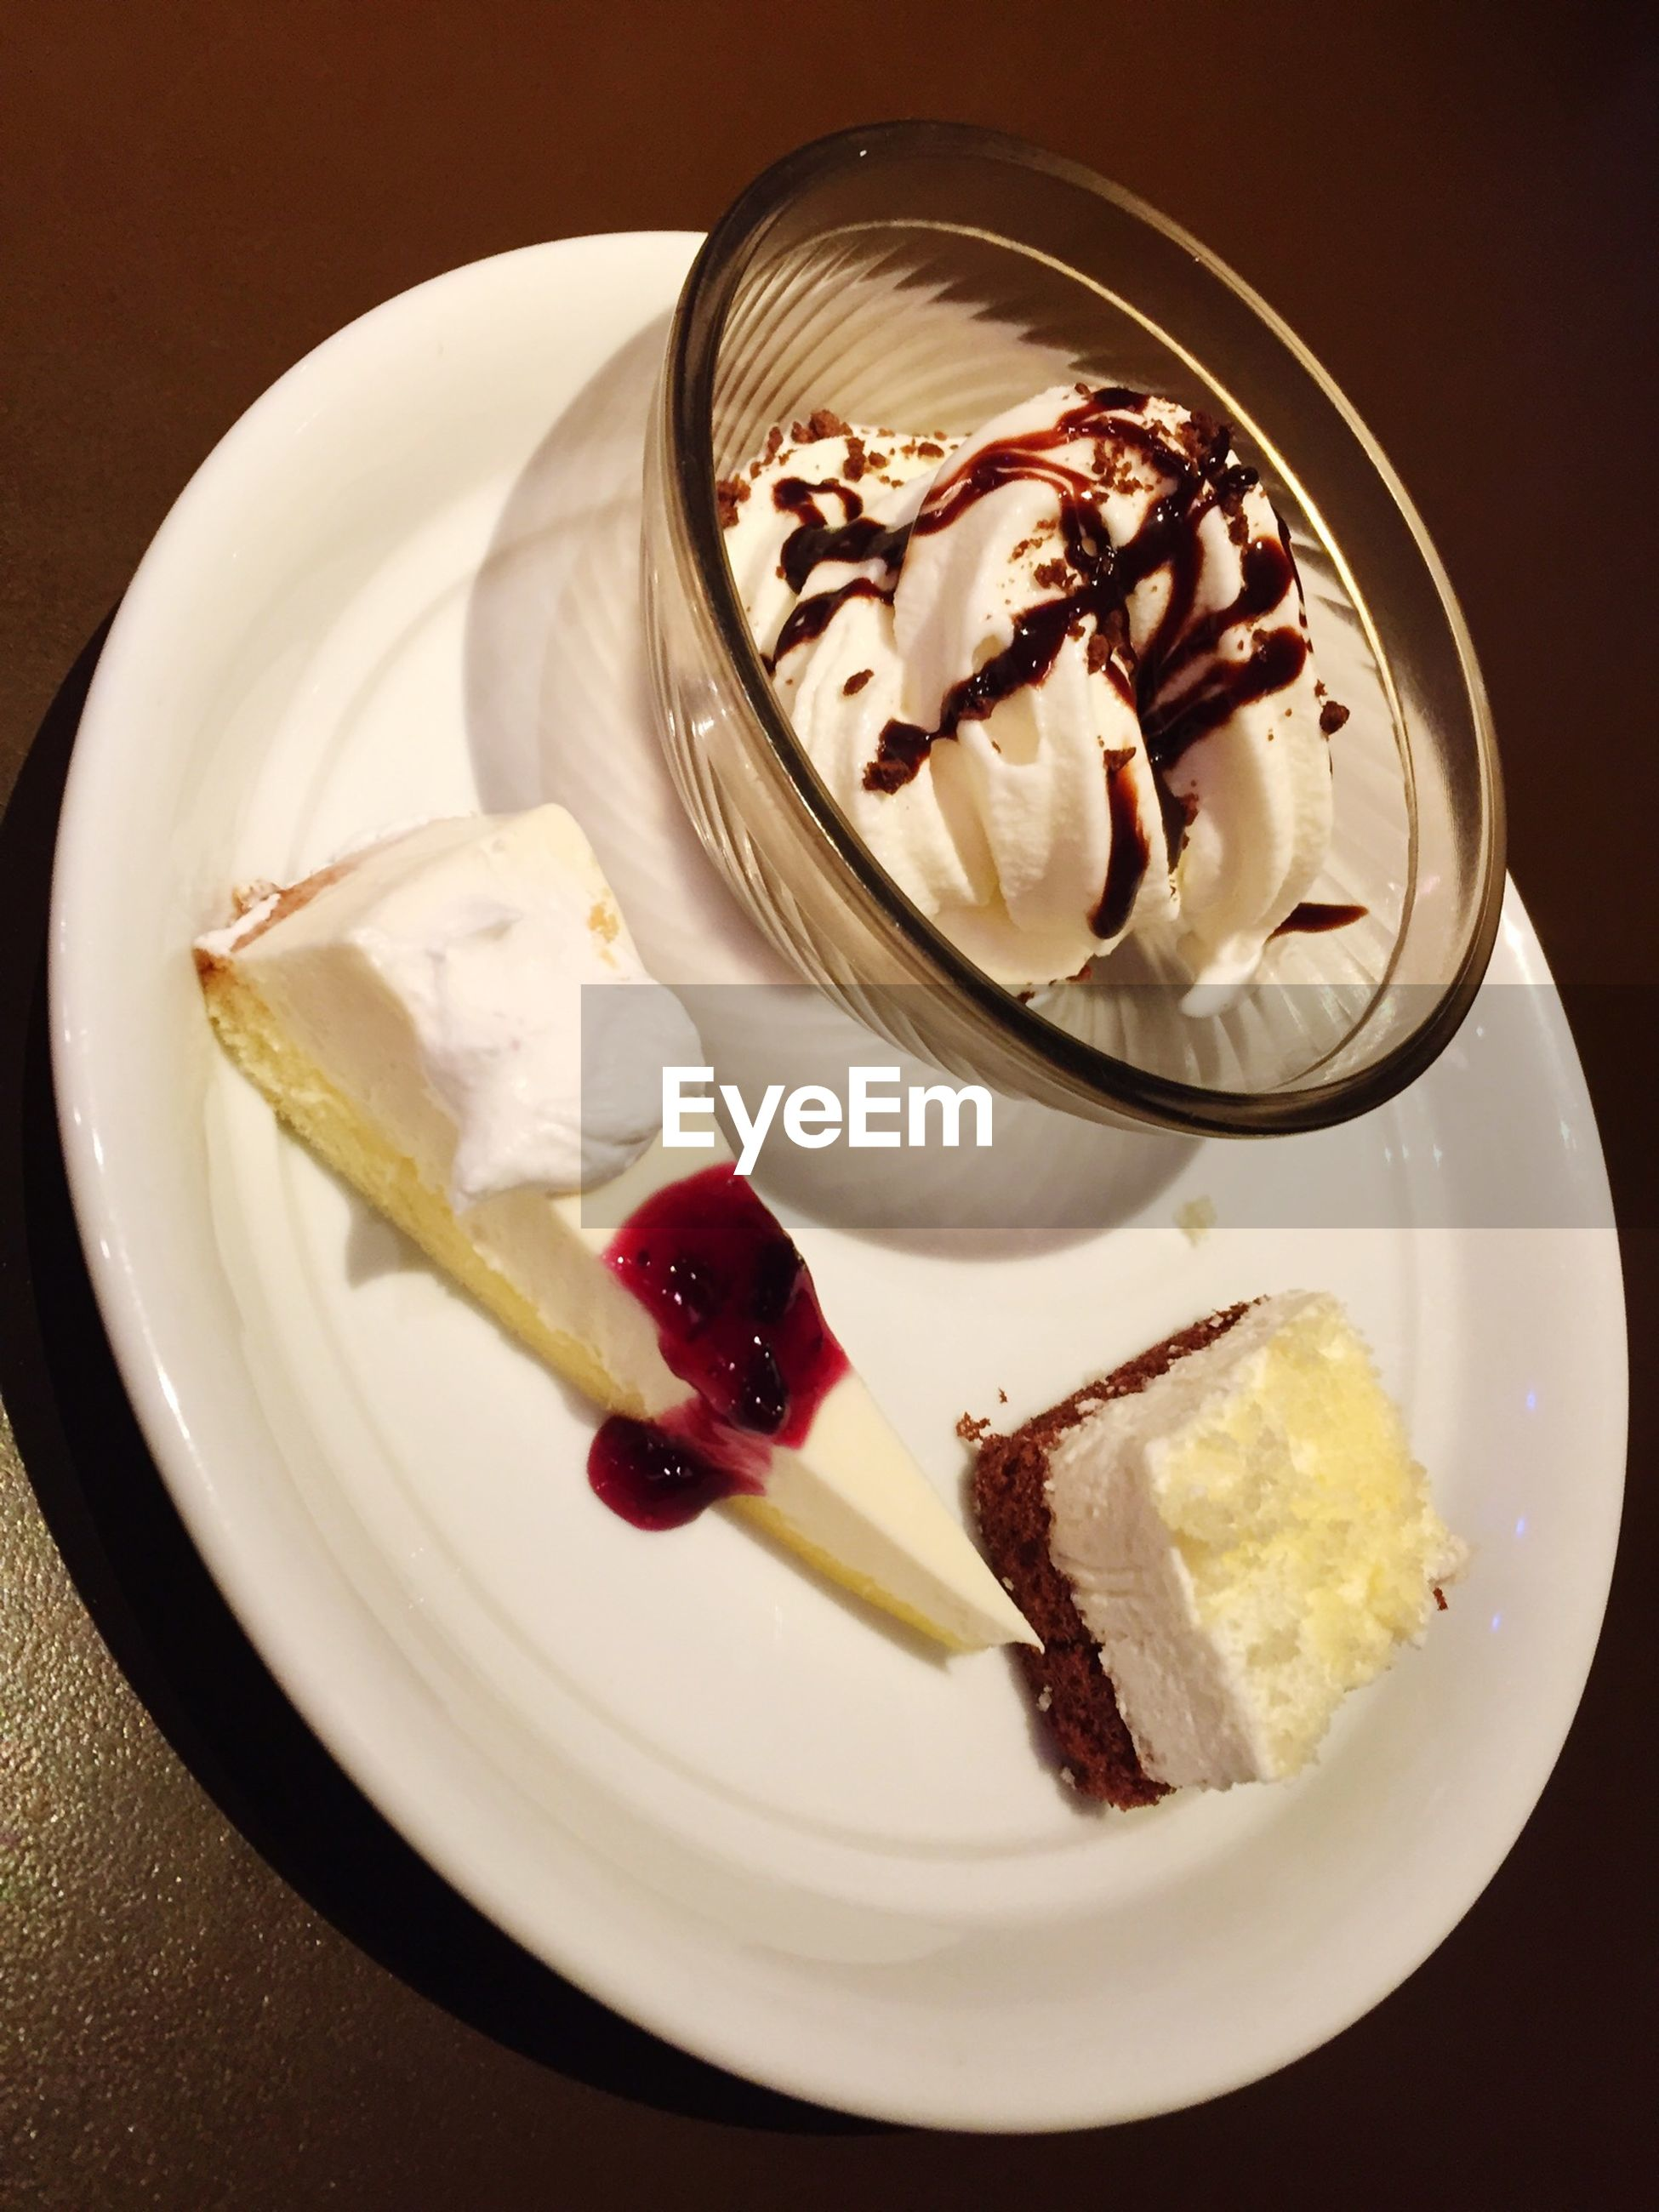 food and drink, food, freshness, sweet food, dessert, indoors, ready-to-eat, indulgence, plate, still life, unhealthy eating, temptation, ice cream, cake, strawberry, fruit, frozen food, table, close-up, serving size